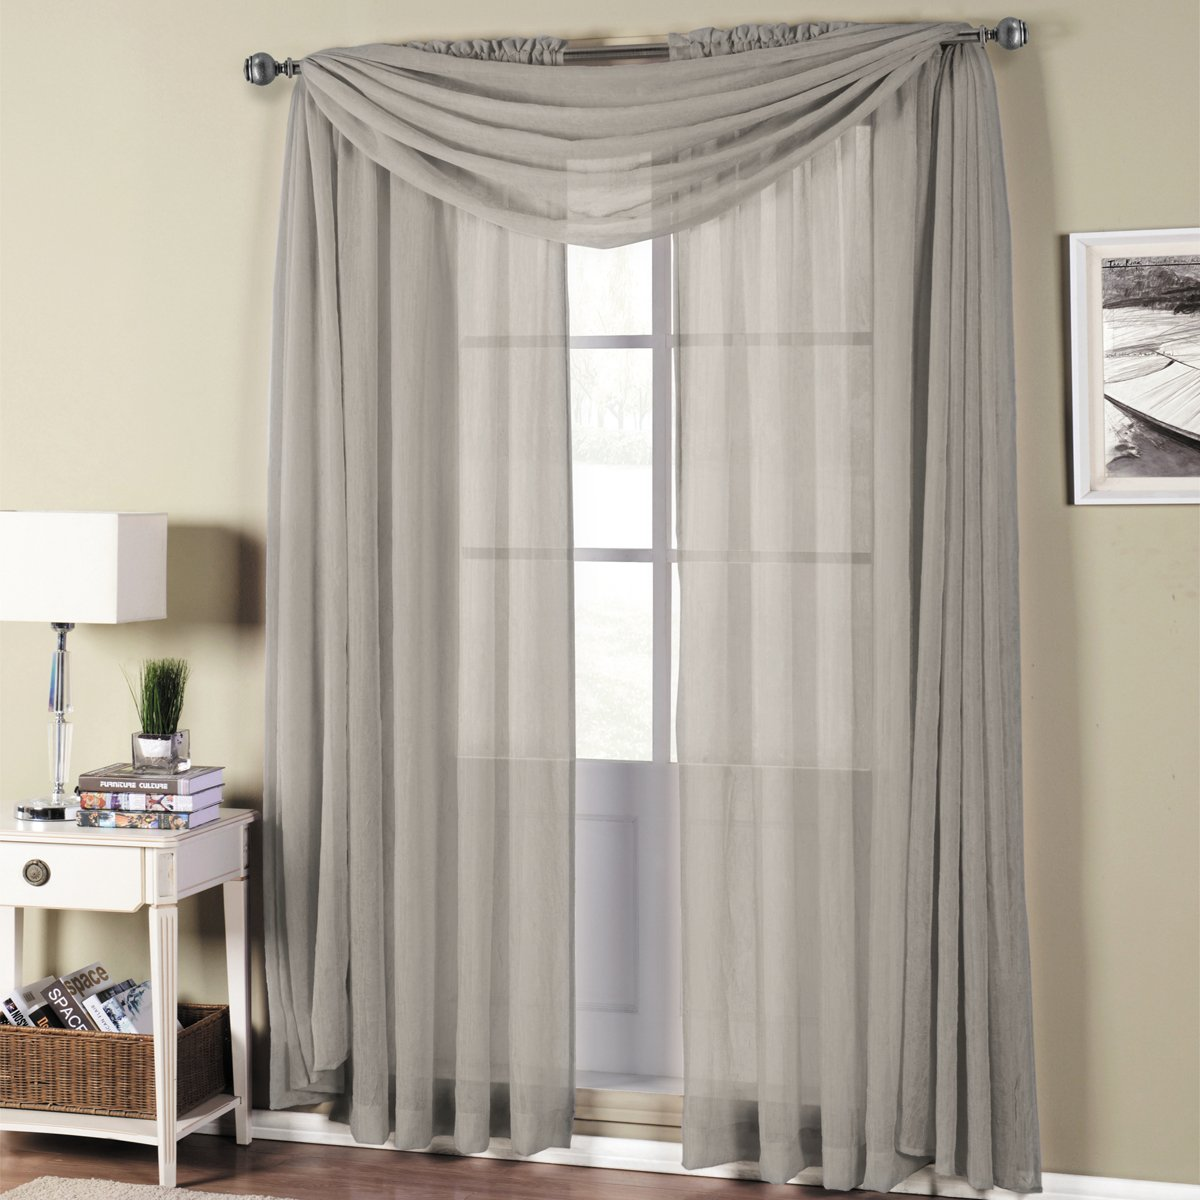 Abri Gray Silver Rod Pocket Crushed Sheer Curtain Panel Crisya In Mocca 37 Panel50x84 Inches By Royal Hotel Home Kitchen